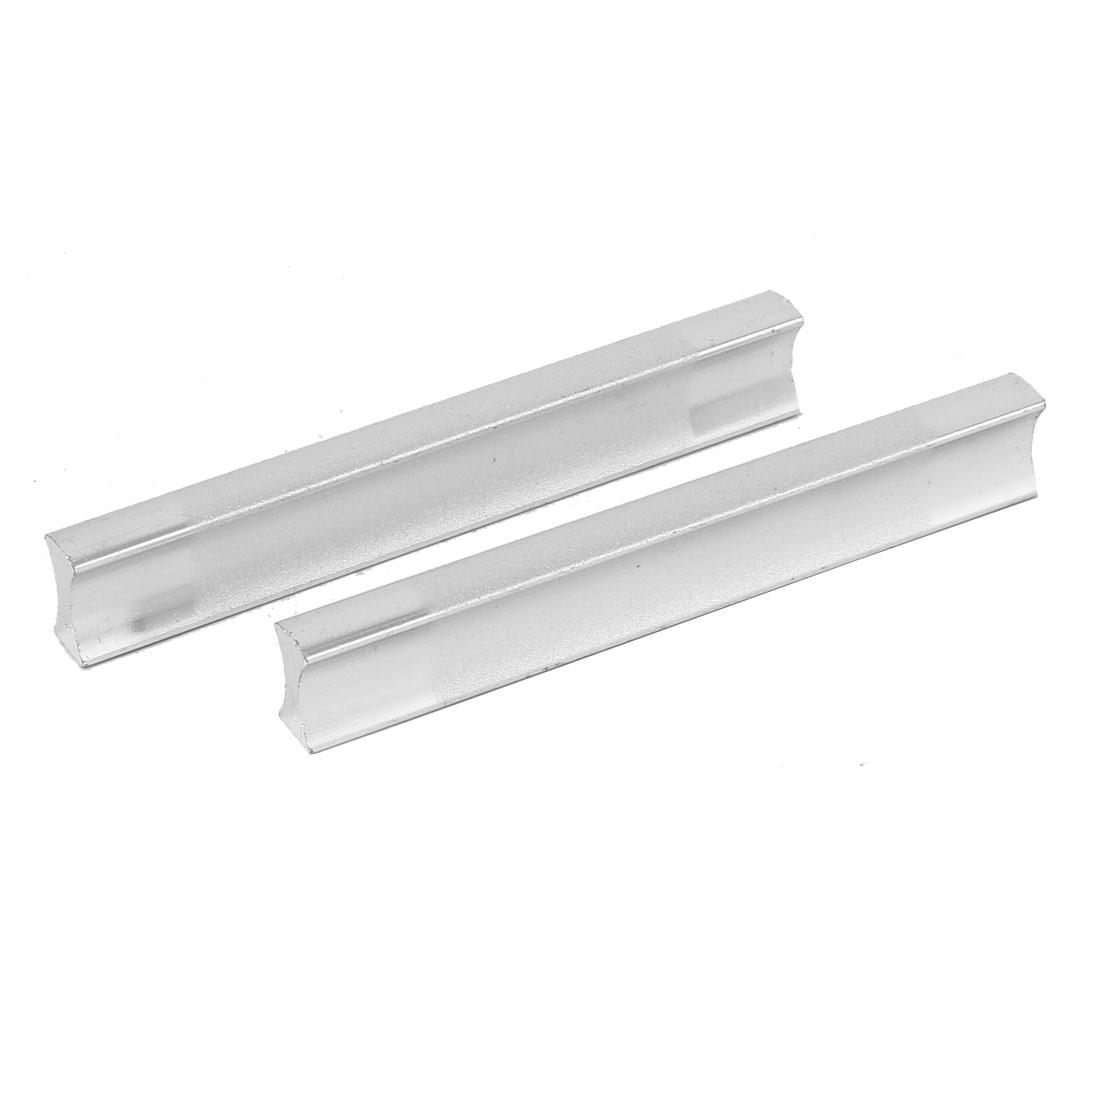 96 Mount Distance Cupboard Wardrobe Drawer Door Hardware Pull Handle 2pcs